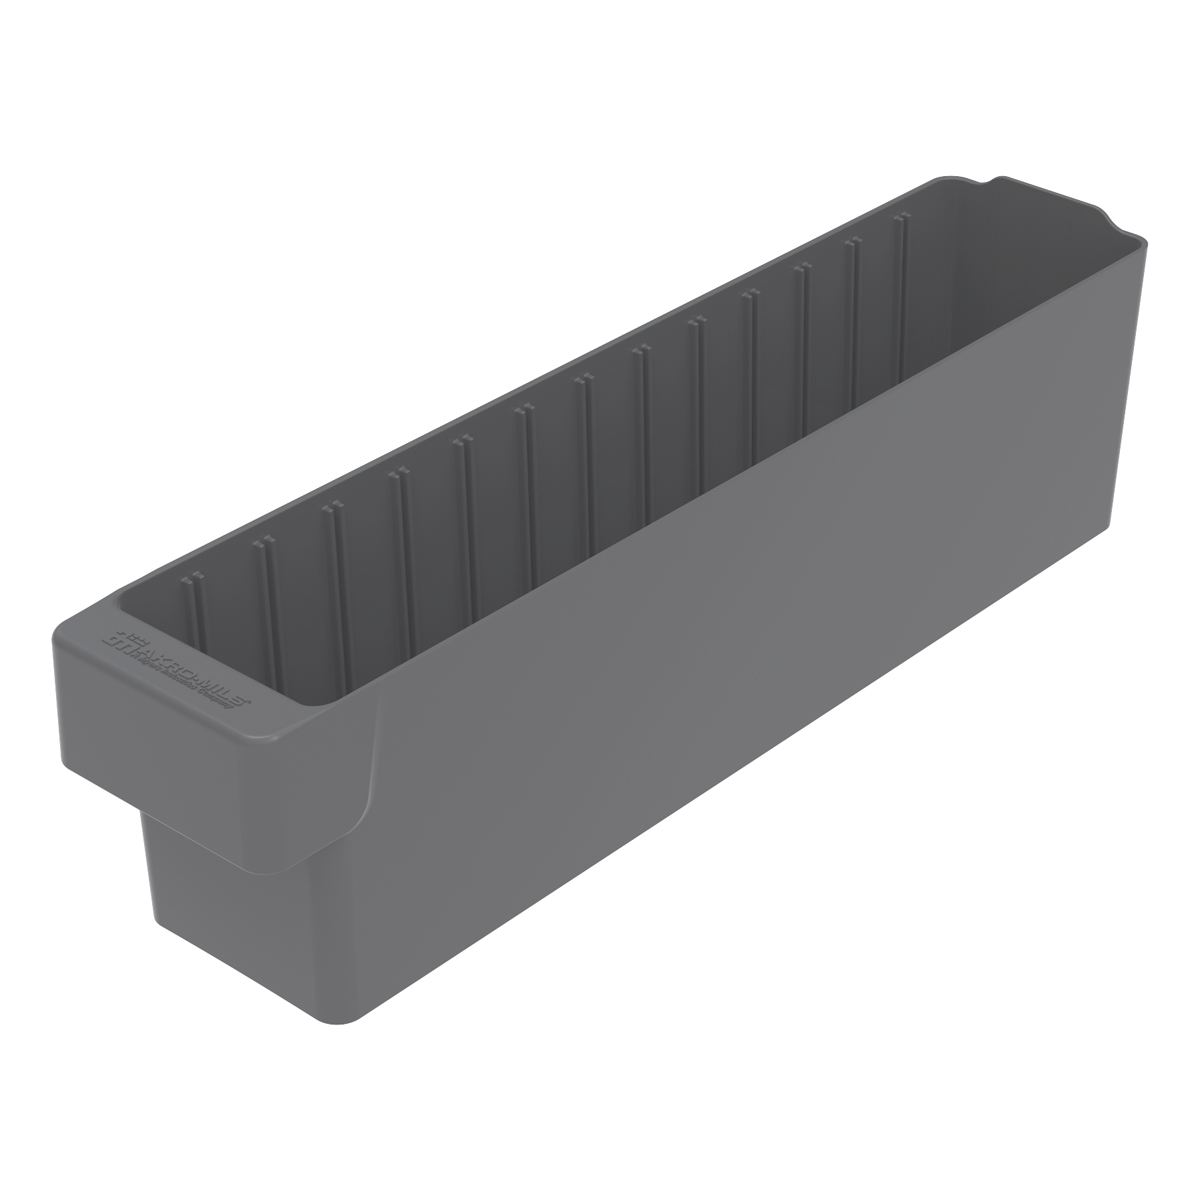 AkroDrawer 17-5/8 x 3-3/4 x 4-5/8, Gray (31148GRY).  This item sold in carton quantities of 6.